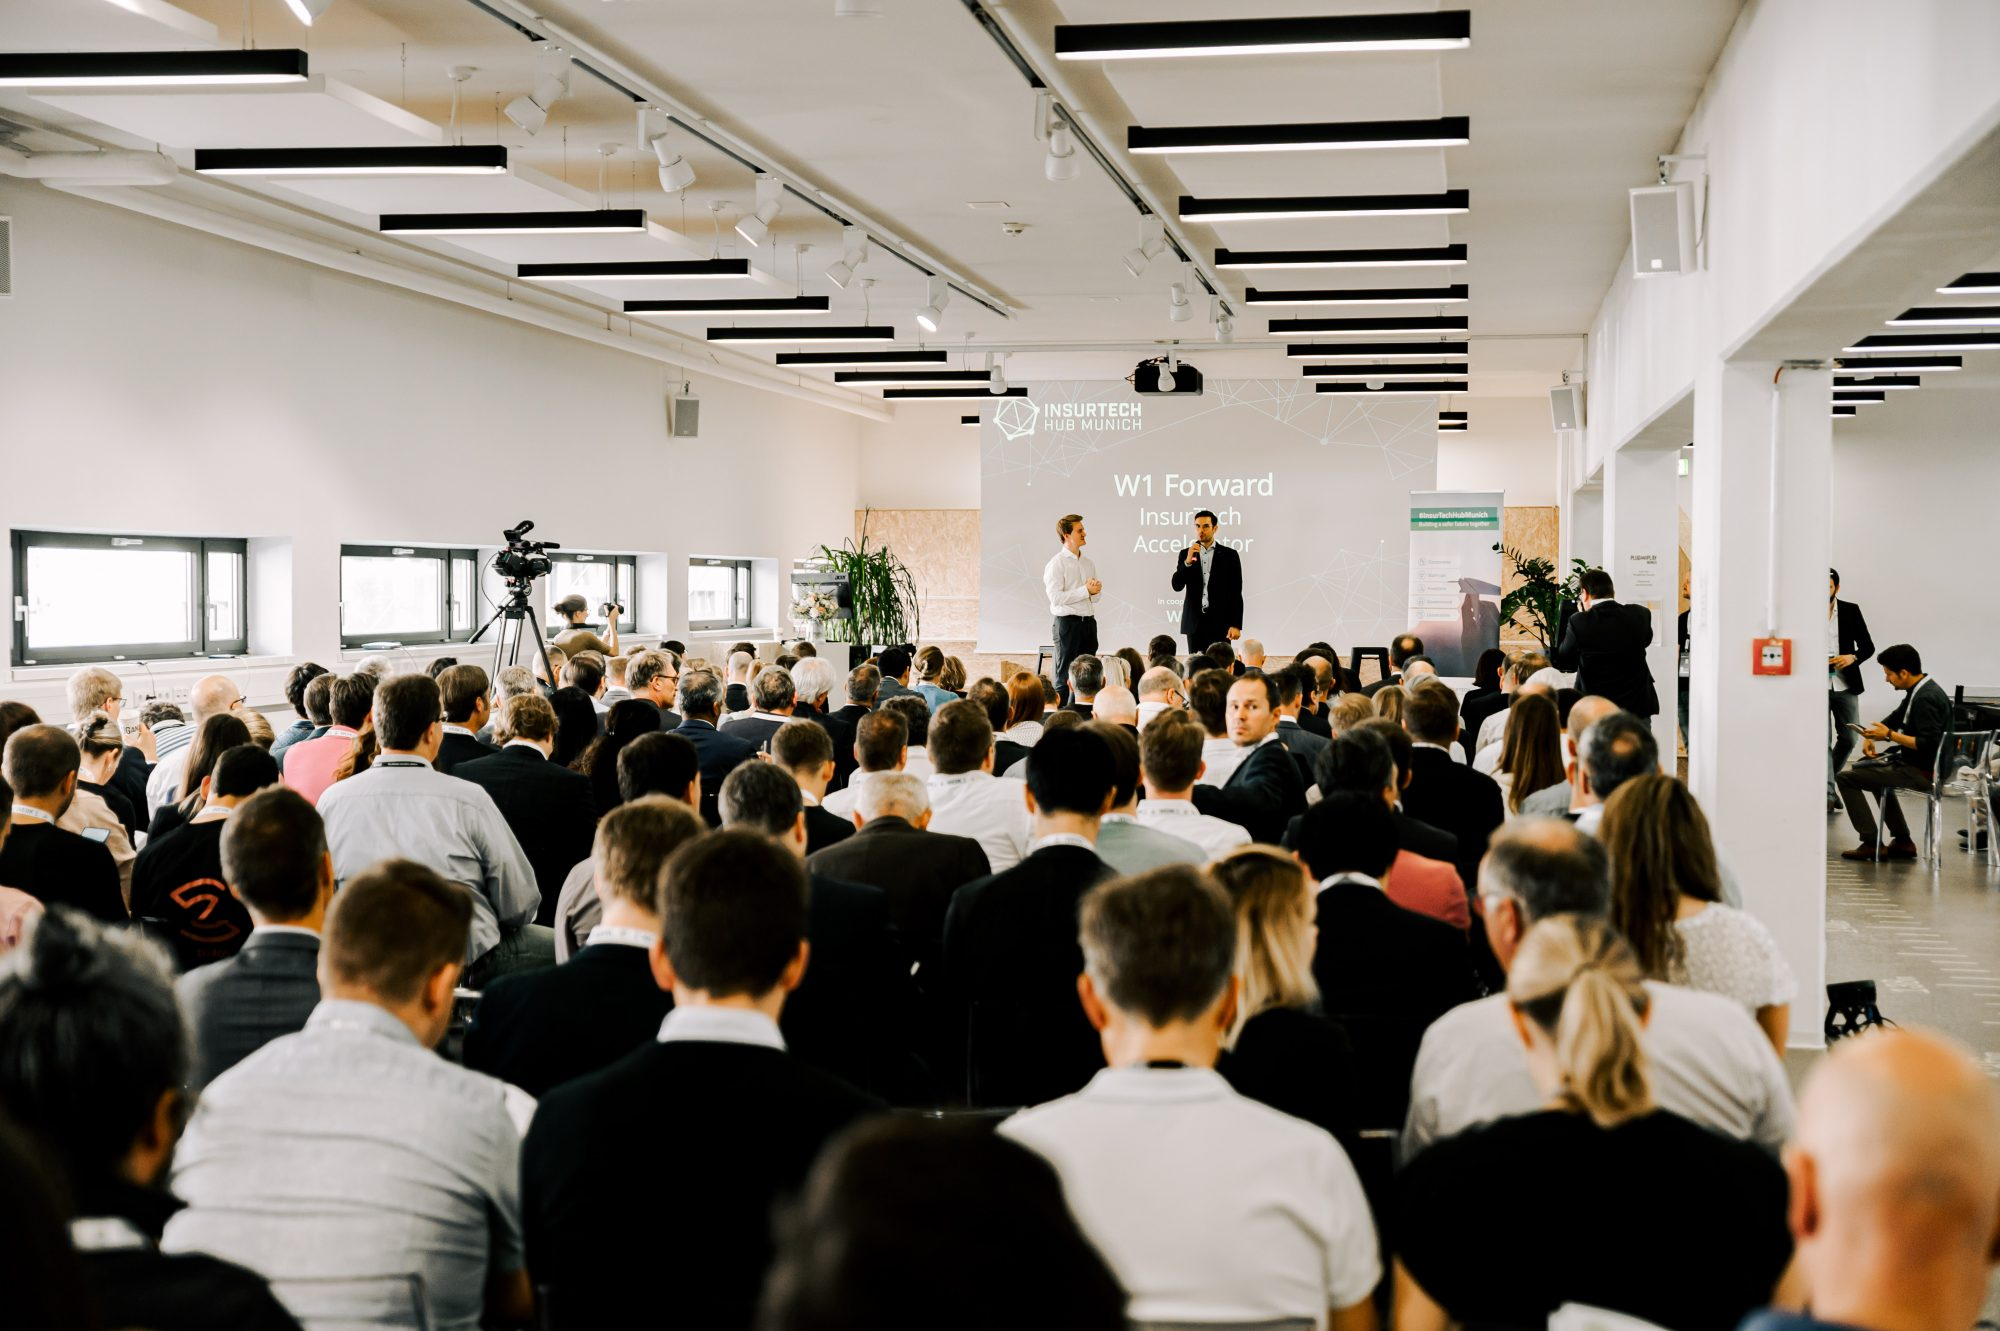 Pitch perfect: W1 Forward Insurtech Accelerator Demo Day established as a not-to-miss event for the insurance industry